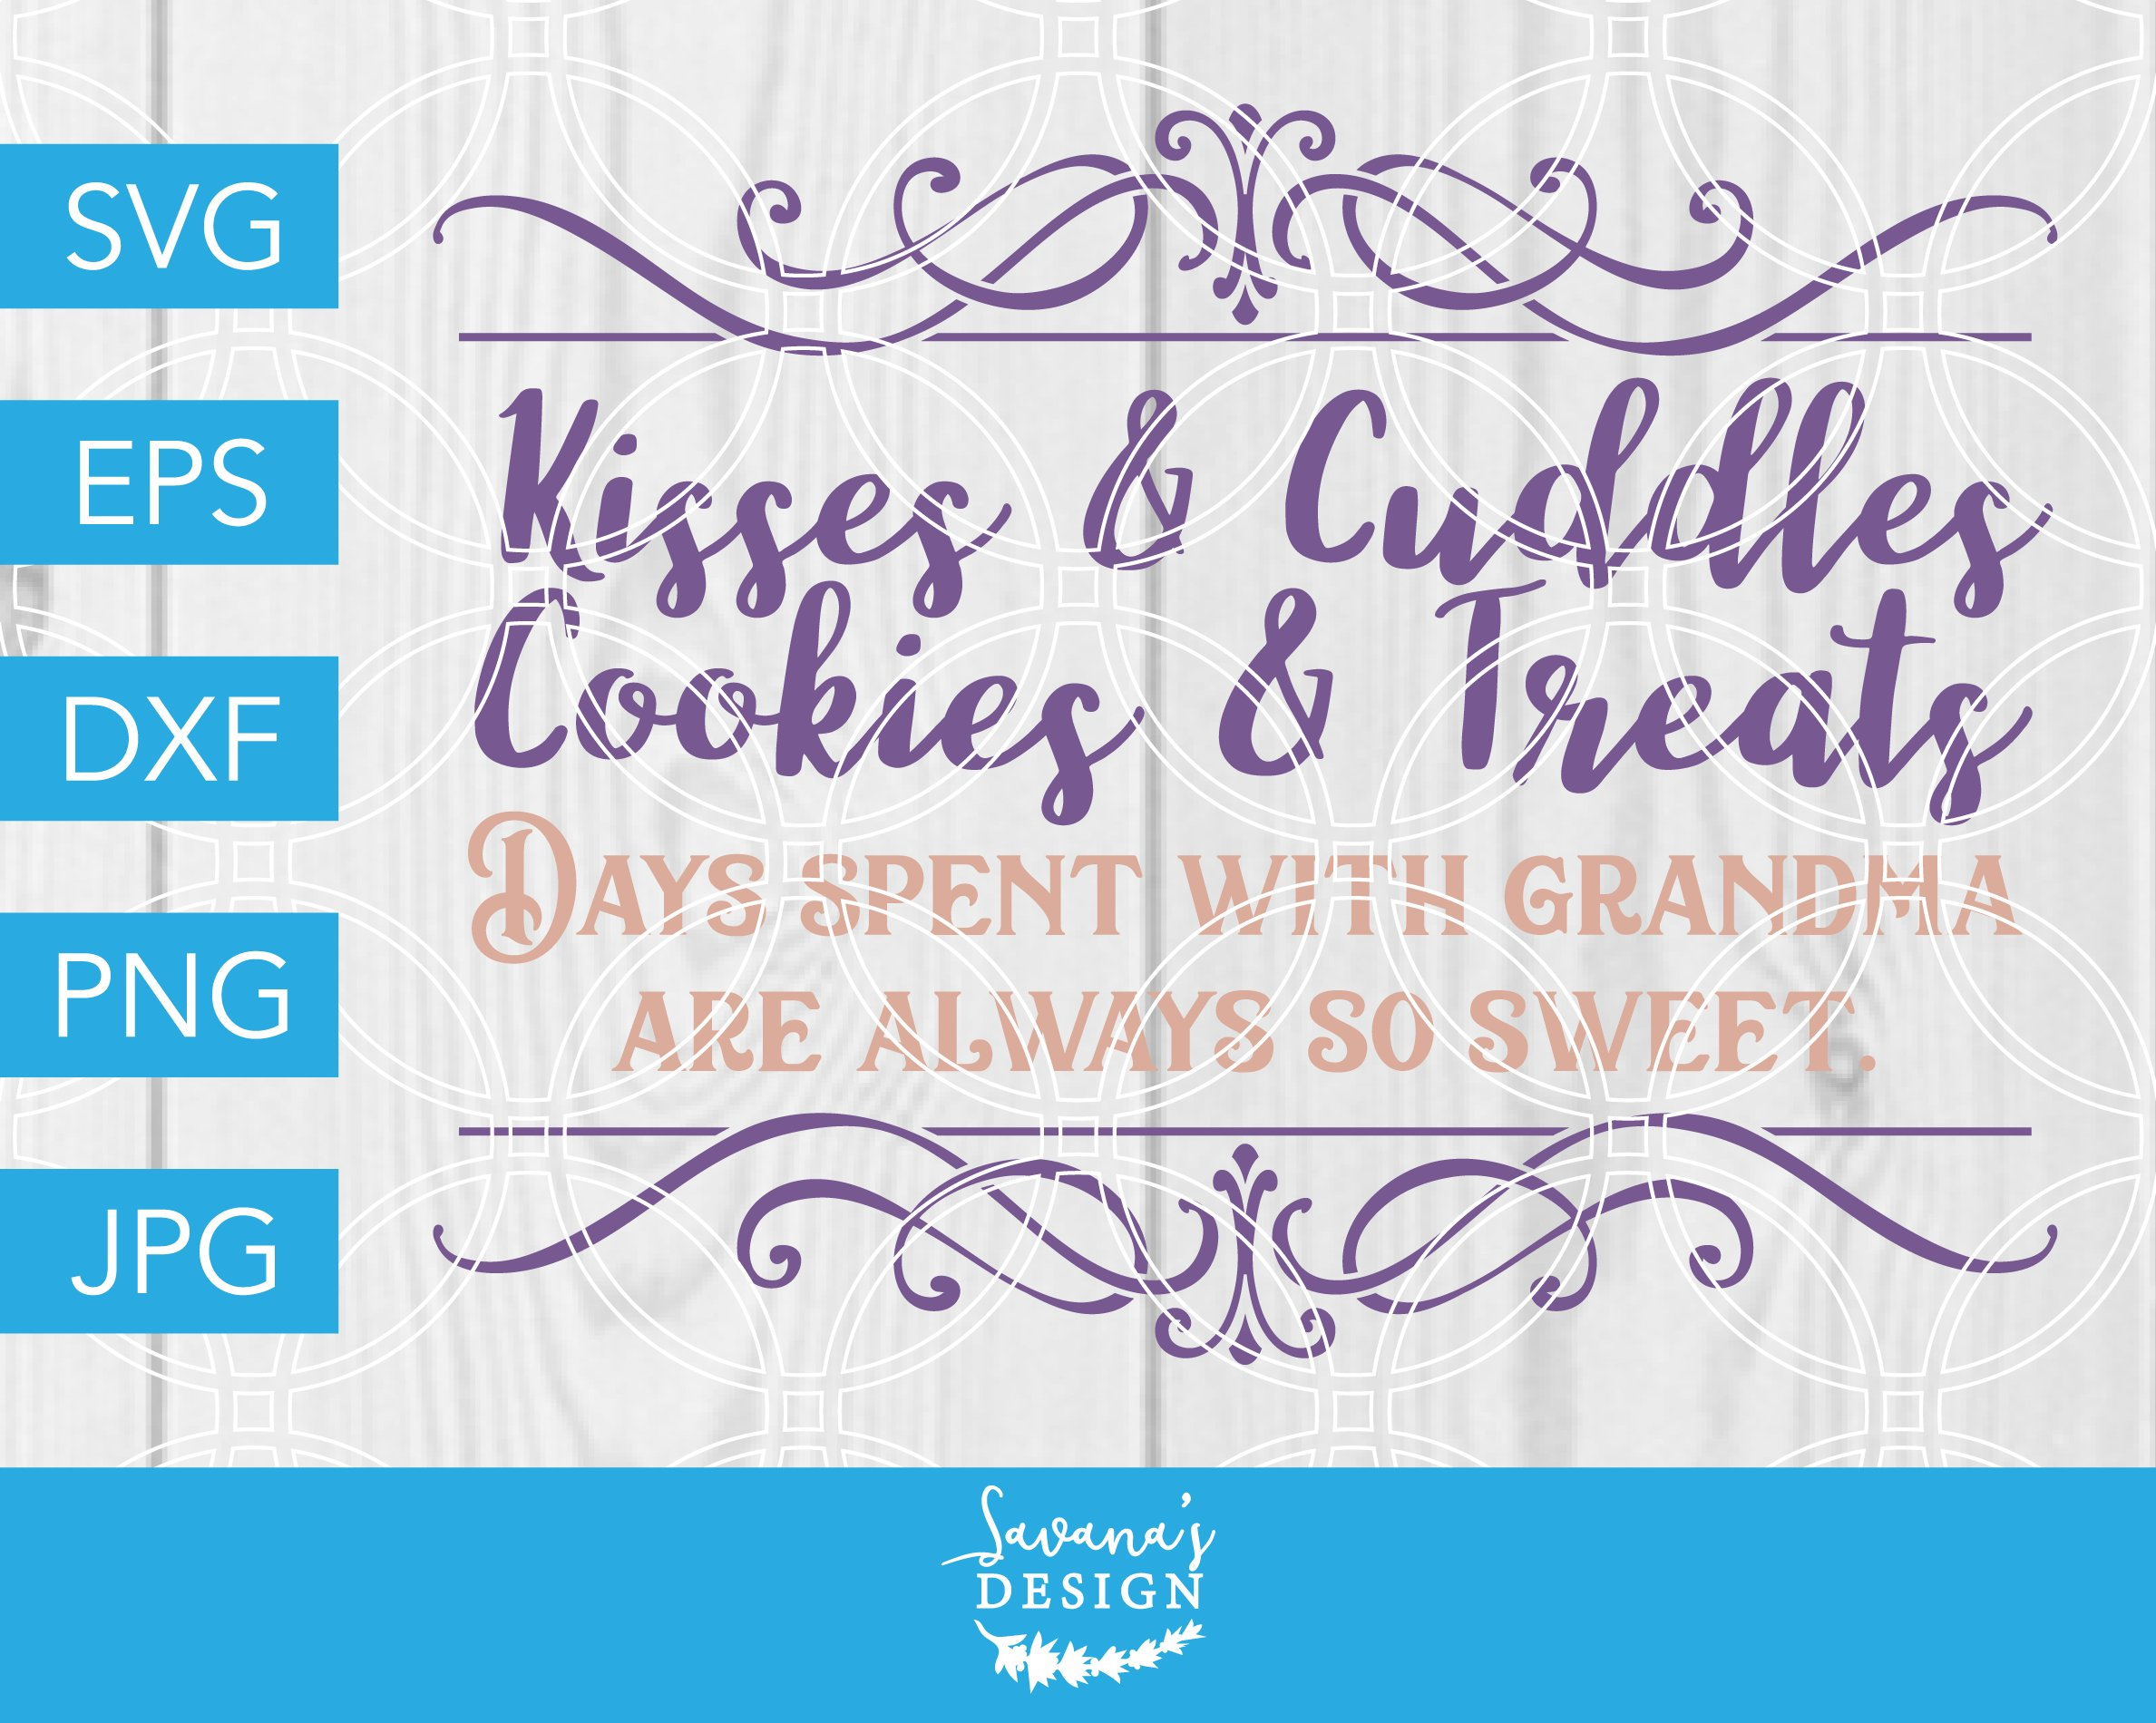 Free Download happy mother's day photos by choreograph. Grandma Quote Svg Mothers Day Svg Pre Designed Vector Graphics Creative Market SVG, PNG, EPS, DXF File